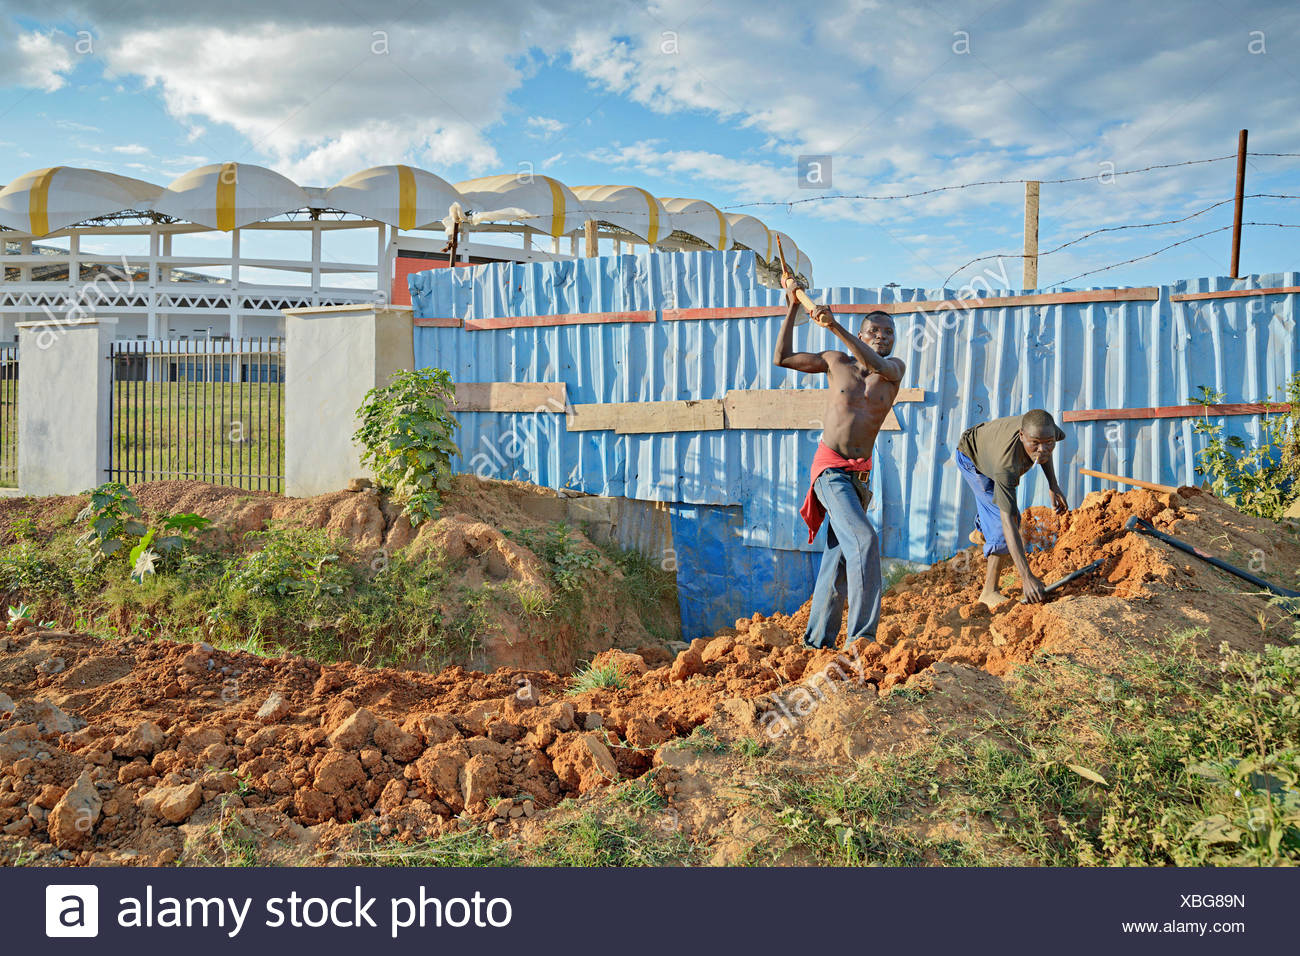 geography / travel, Zambia, Lusaka, Workers near the new Chinese-funded football stadium in Lusaka, the capital of Zambia., Additional-Rights-Clearance-Info-Not-Available - Stock Image